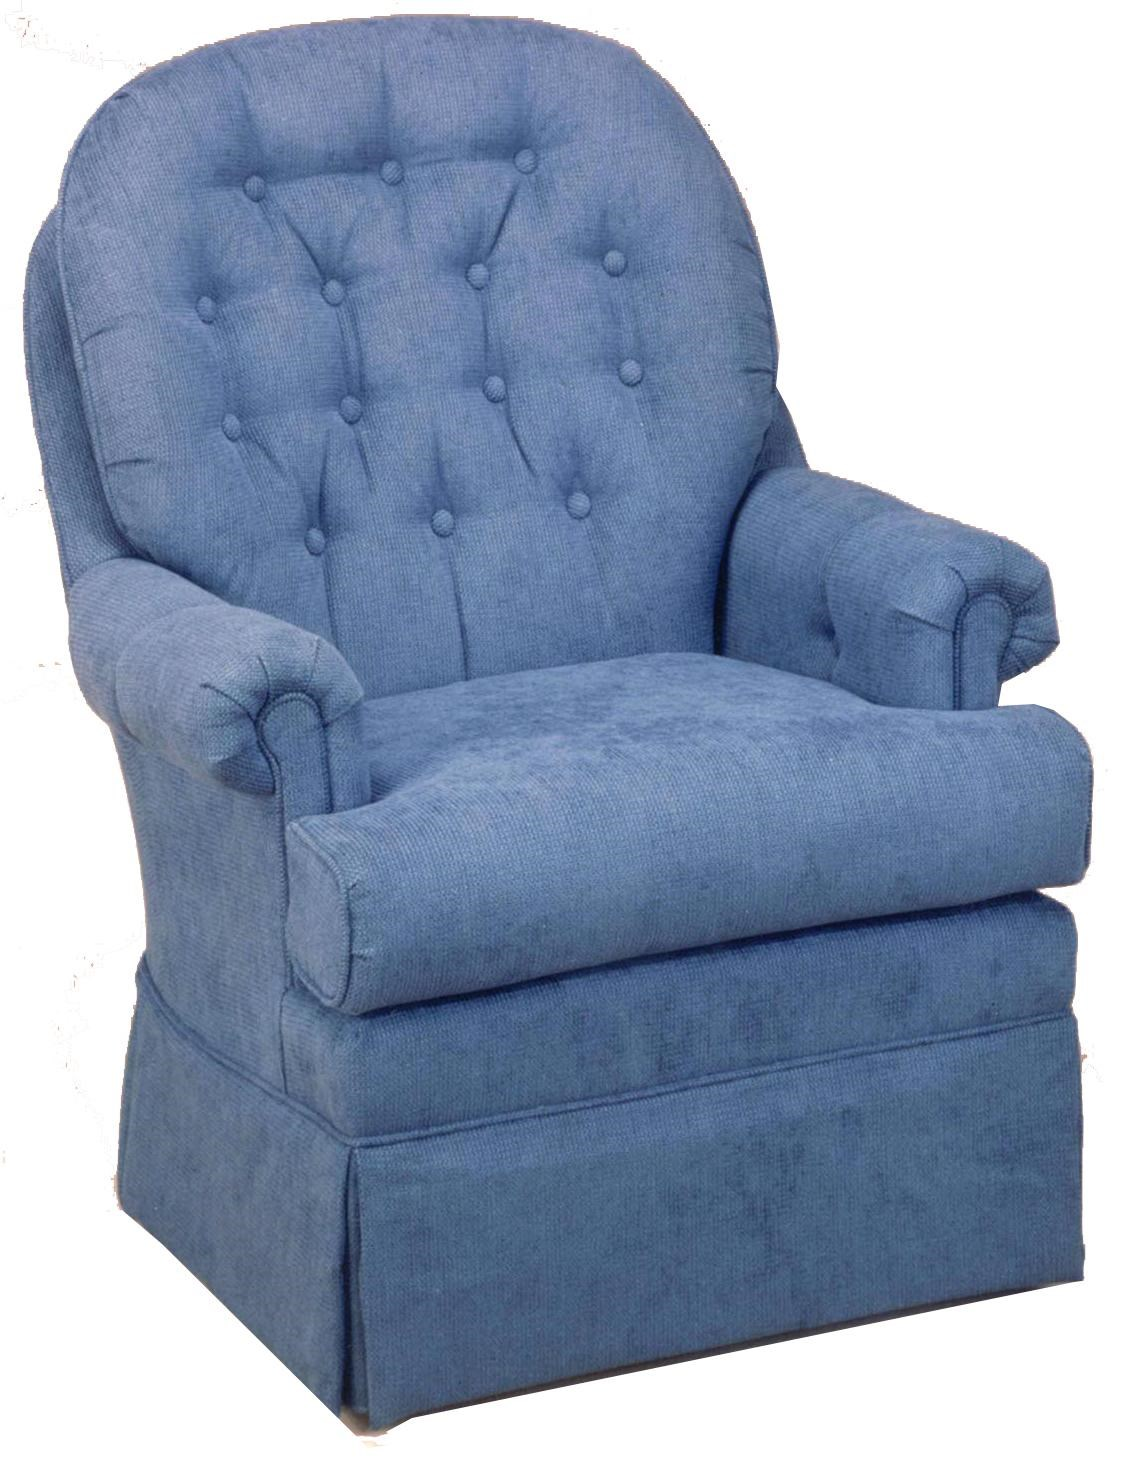 Storytime Chair Best Chairs Storytime Series Storytime Swivel Chairs And Ottomans